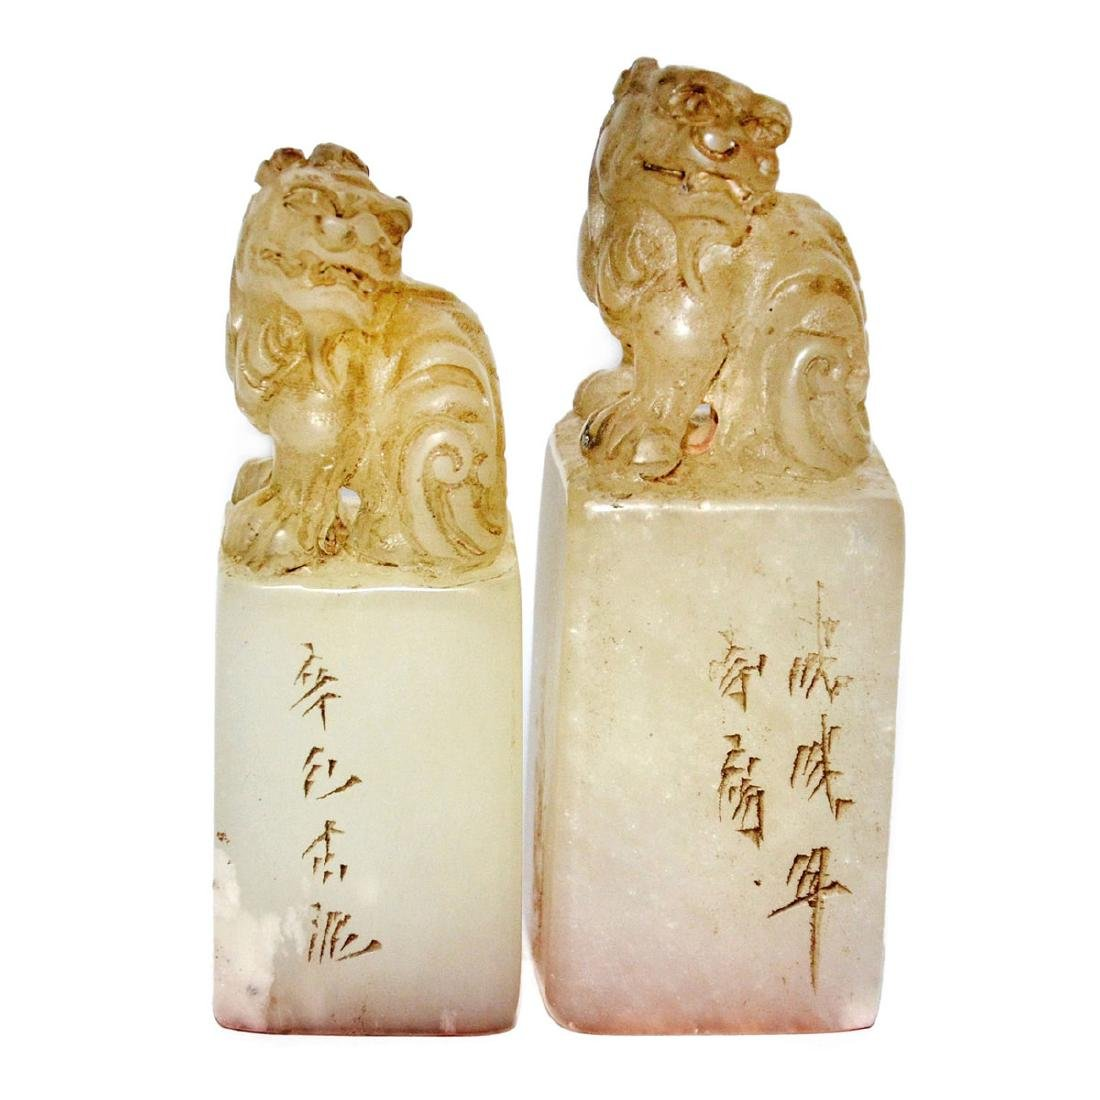 Two Furong Stone Seals with Bixie Knops